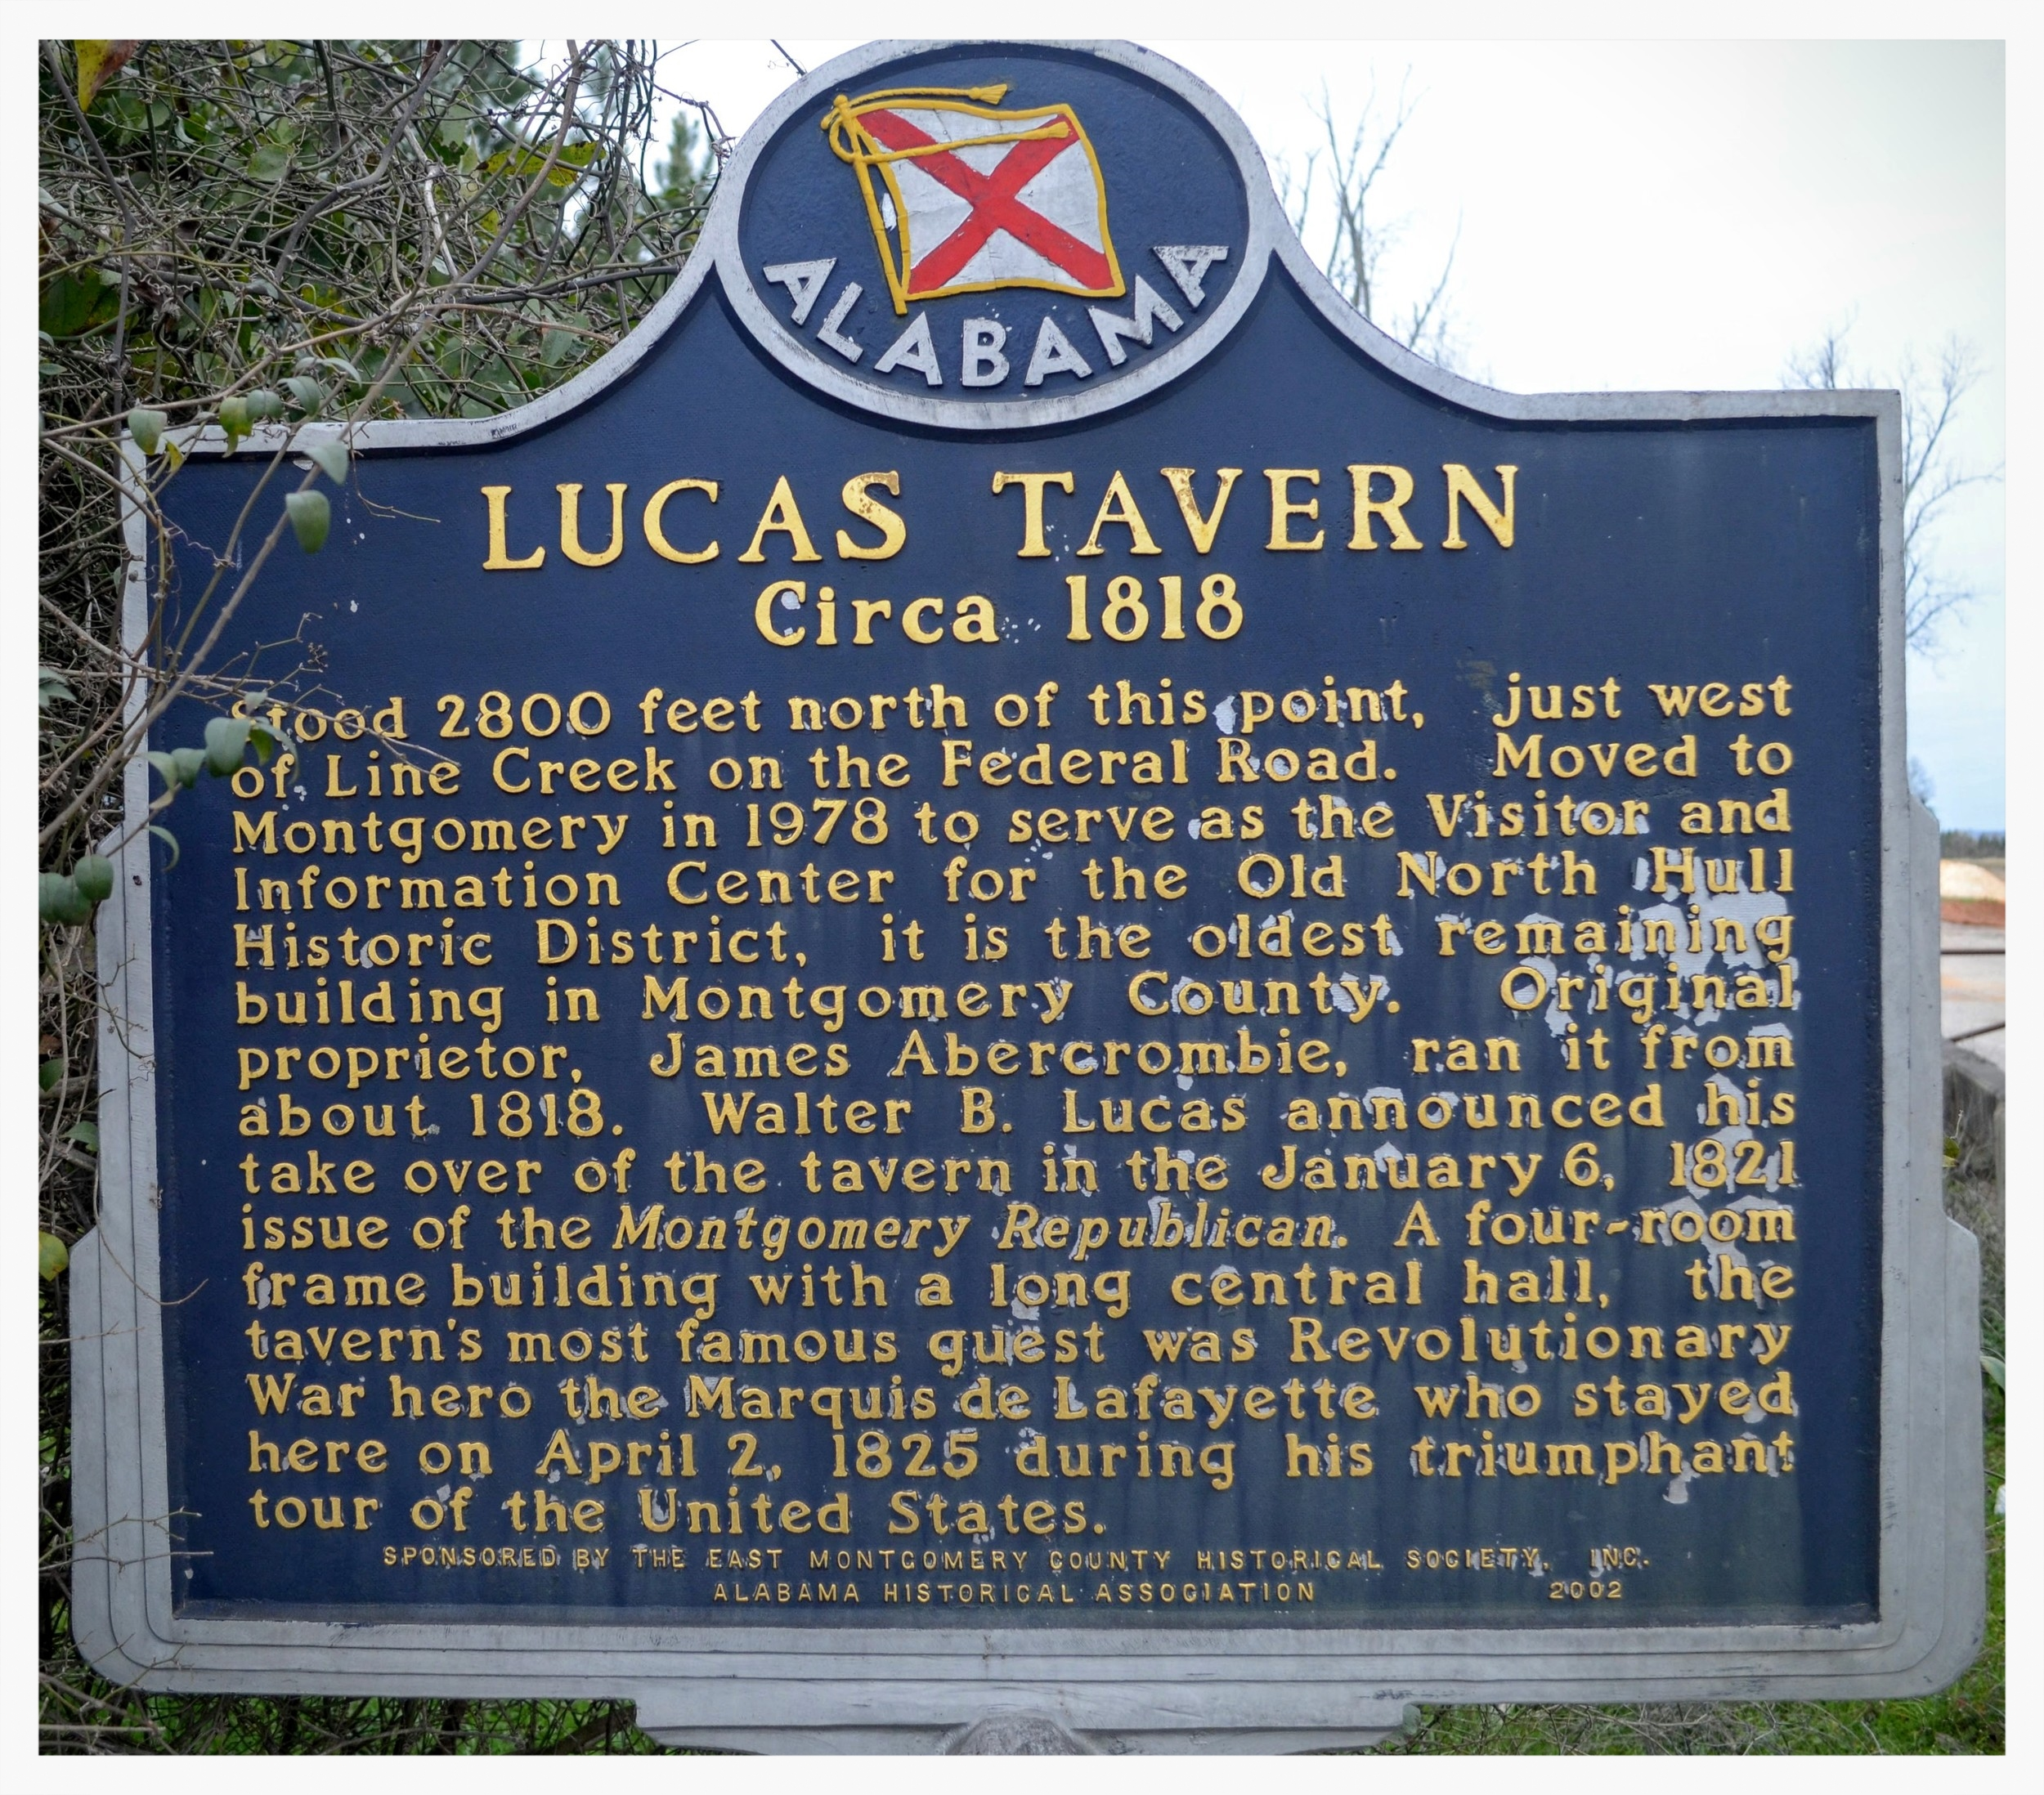 Lucas Tavern historical marker, Waugh, Montgomery County, Alabama